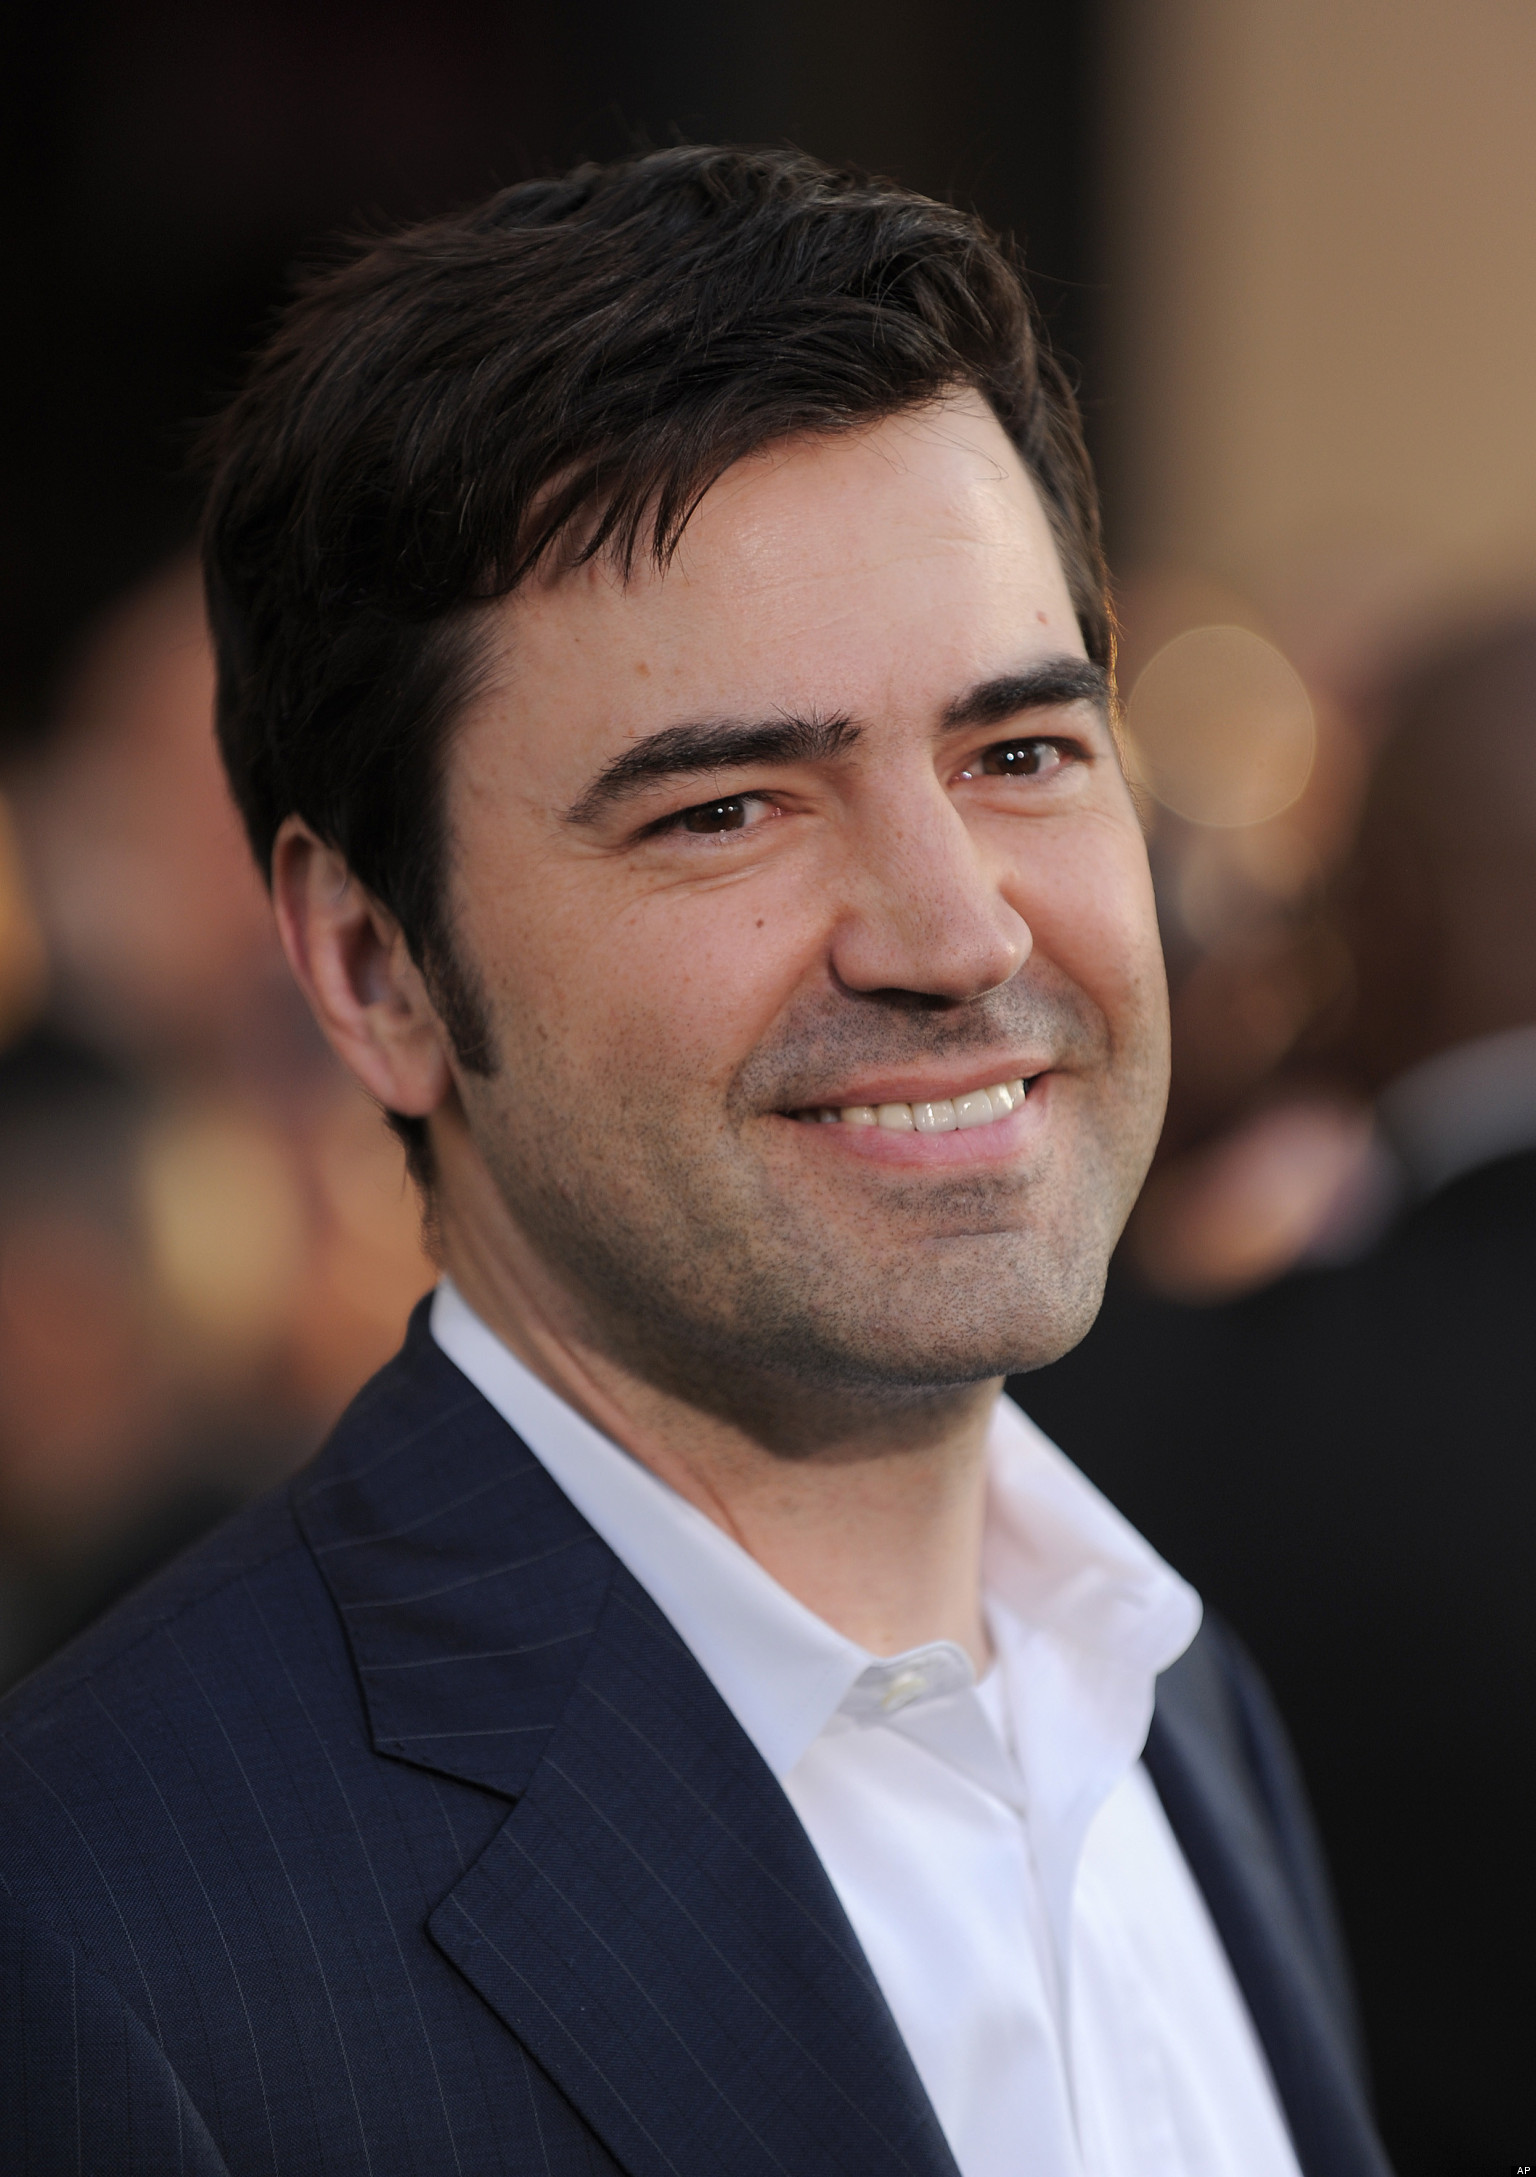 Ron Livingston, U0027The Conjuringu0027 Star, On U0027Office Spaceu0027 And How His  Newscaster Sister Fought Back Against Bullying | HuffPost